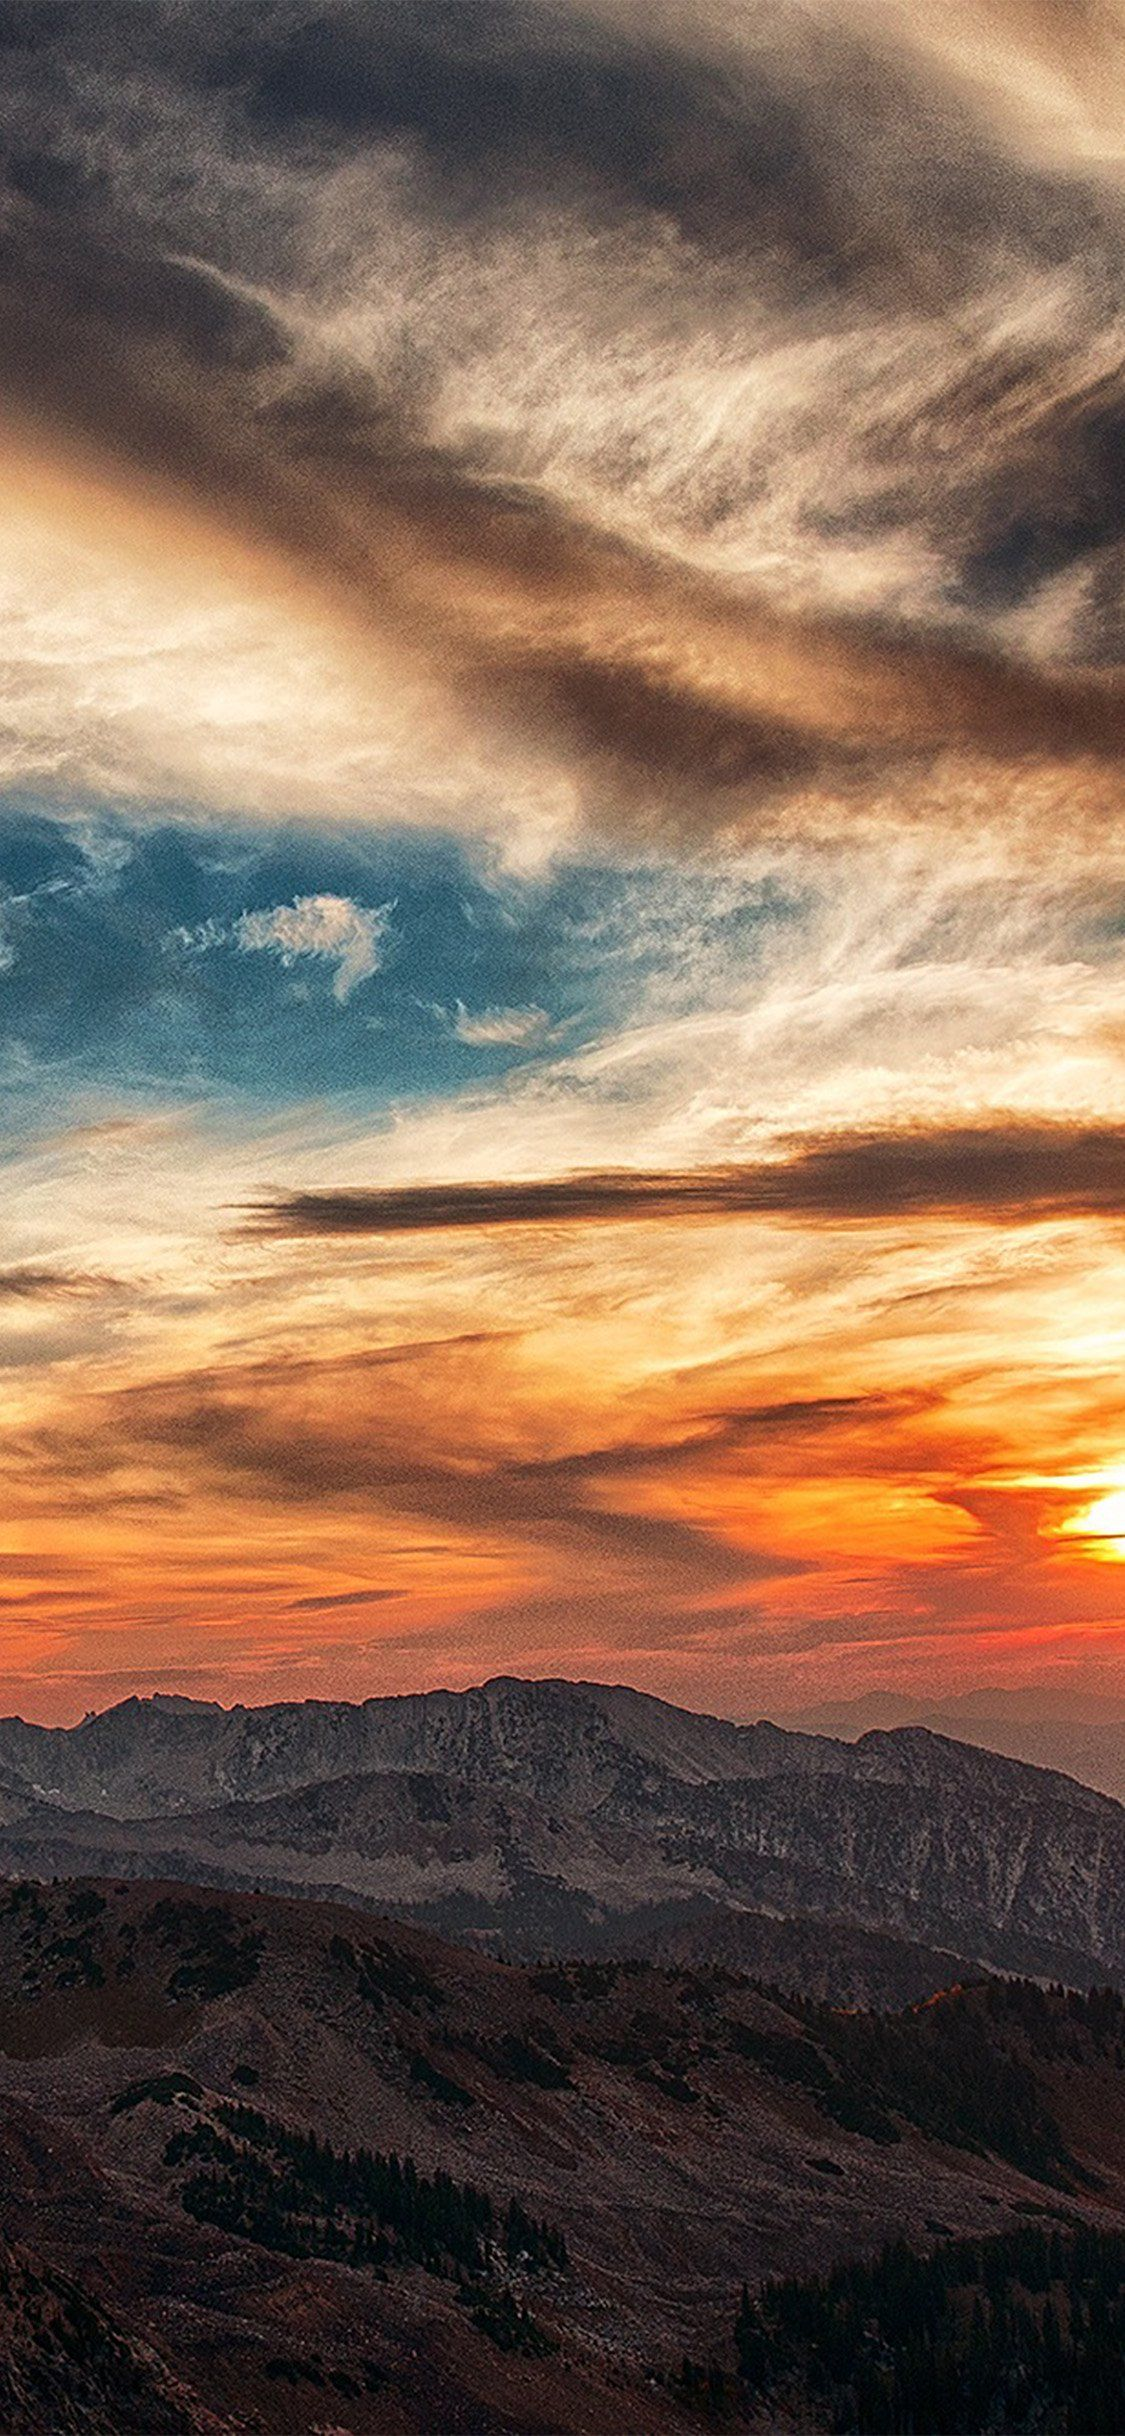 Sunset Mountain Sky Cloud Iphone X Cool Pictures For